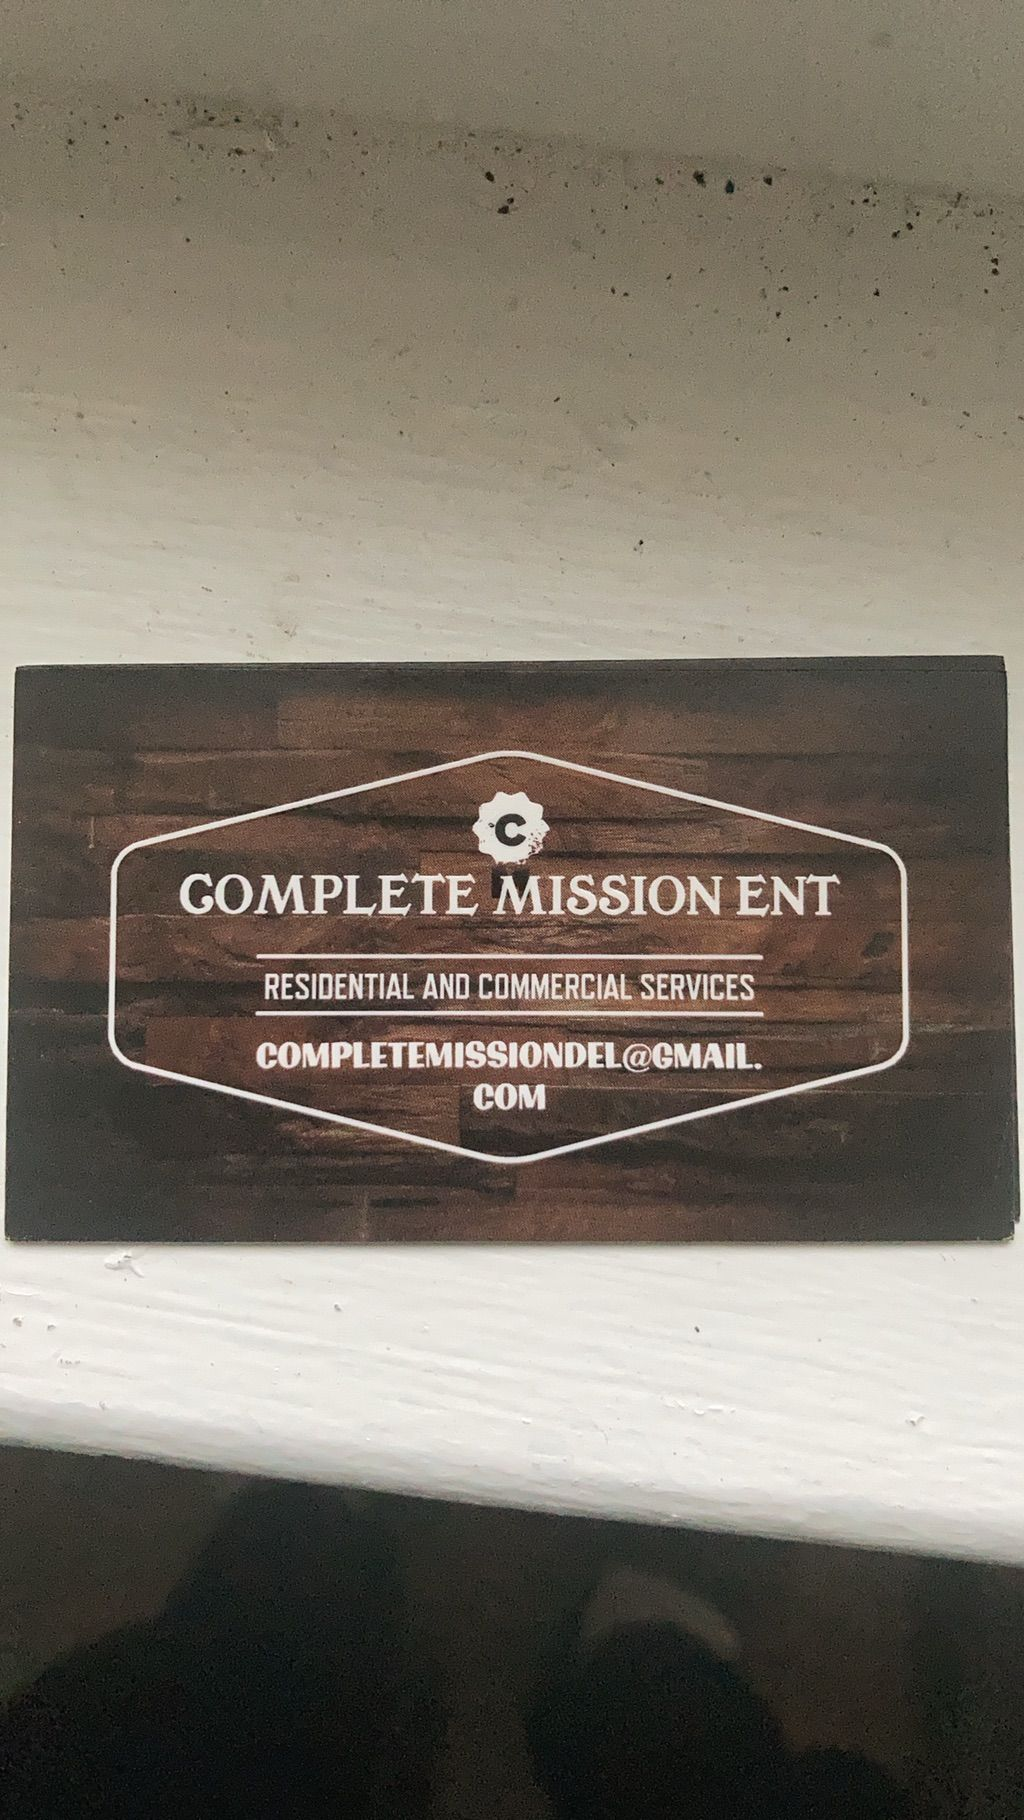 Complete Mission Enterprises